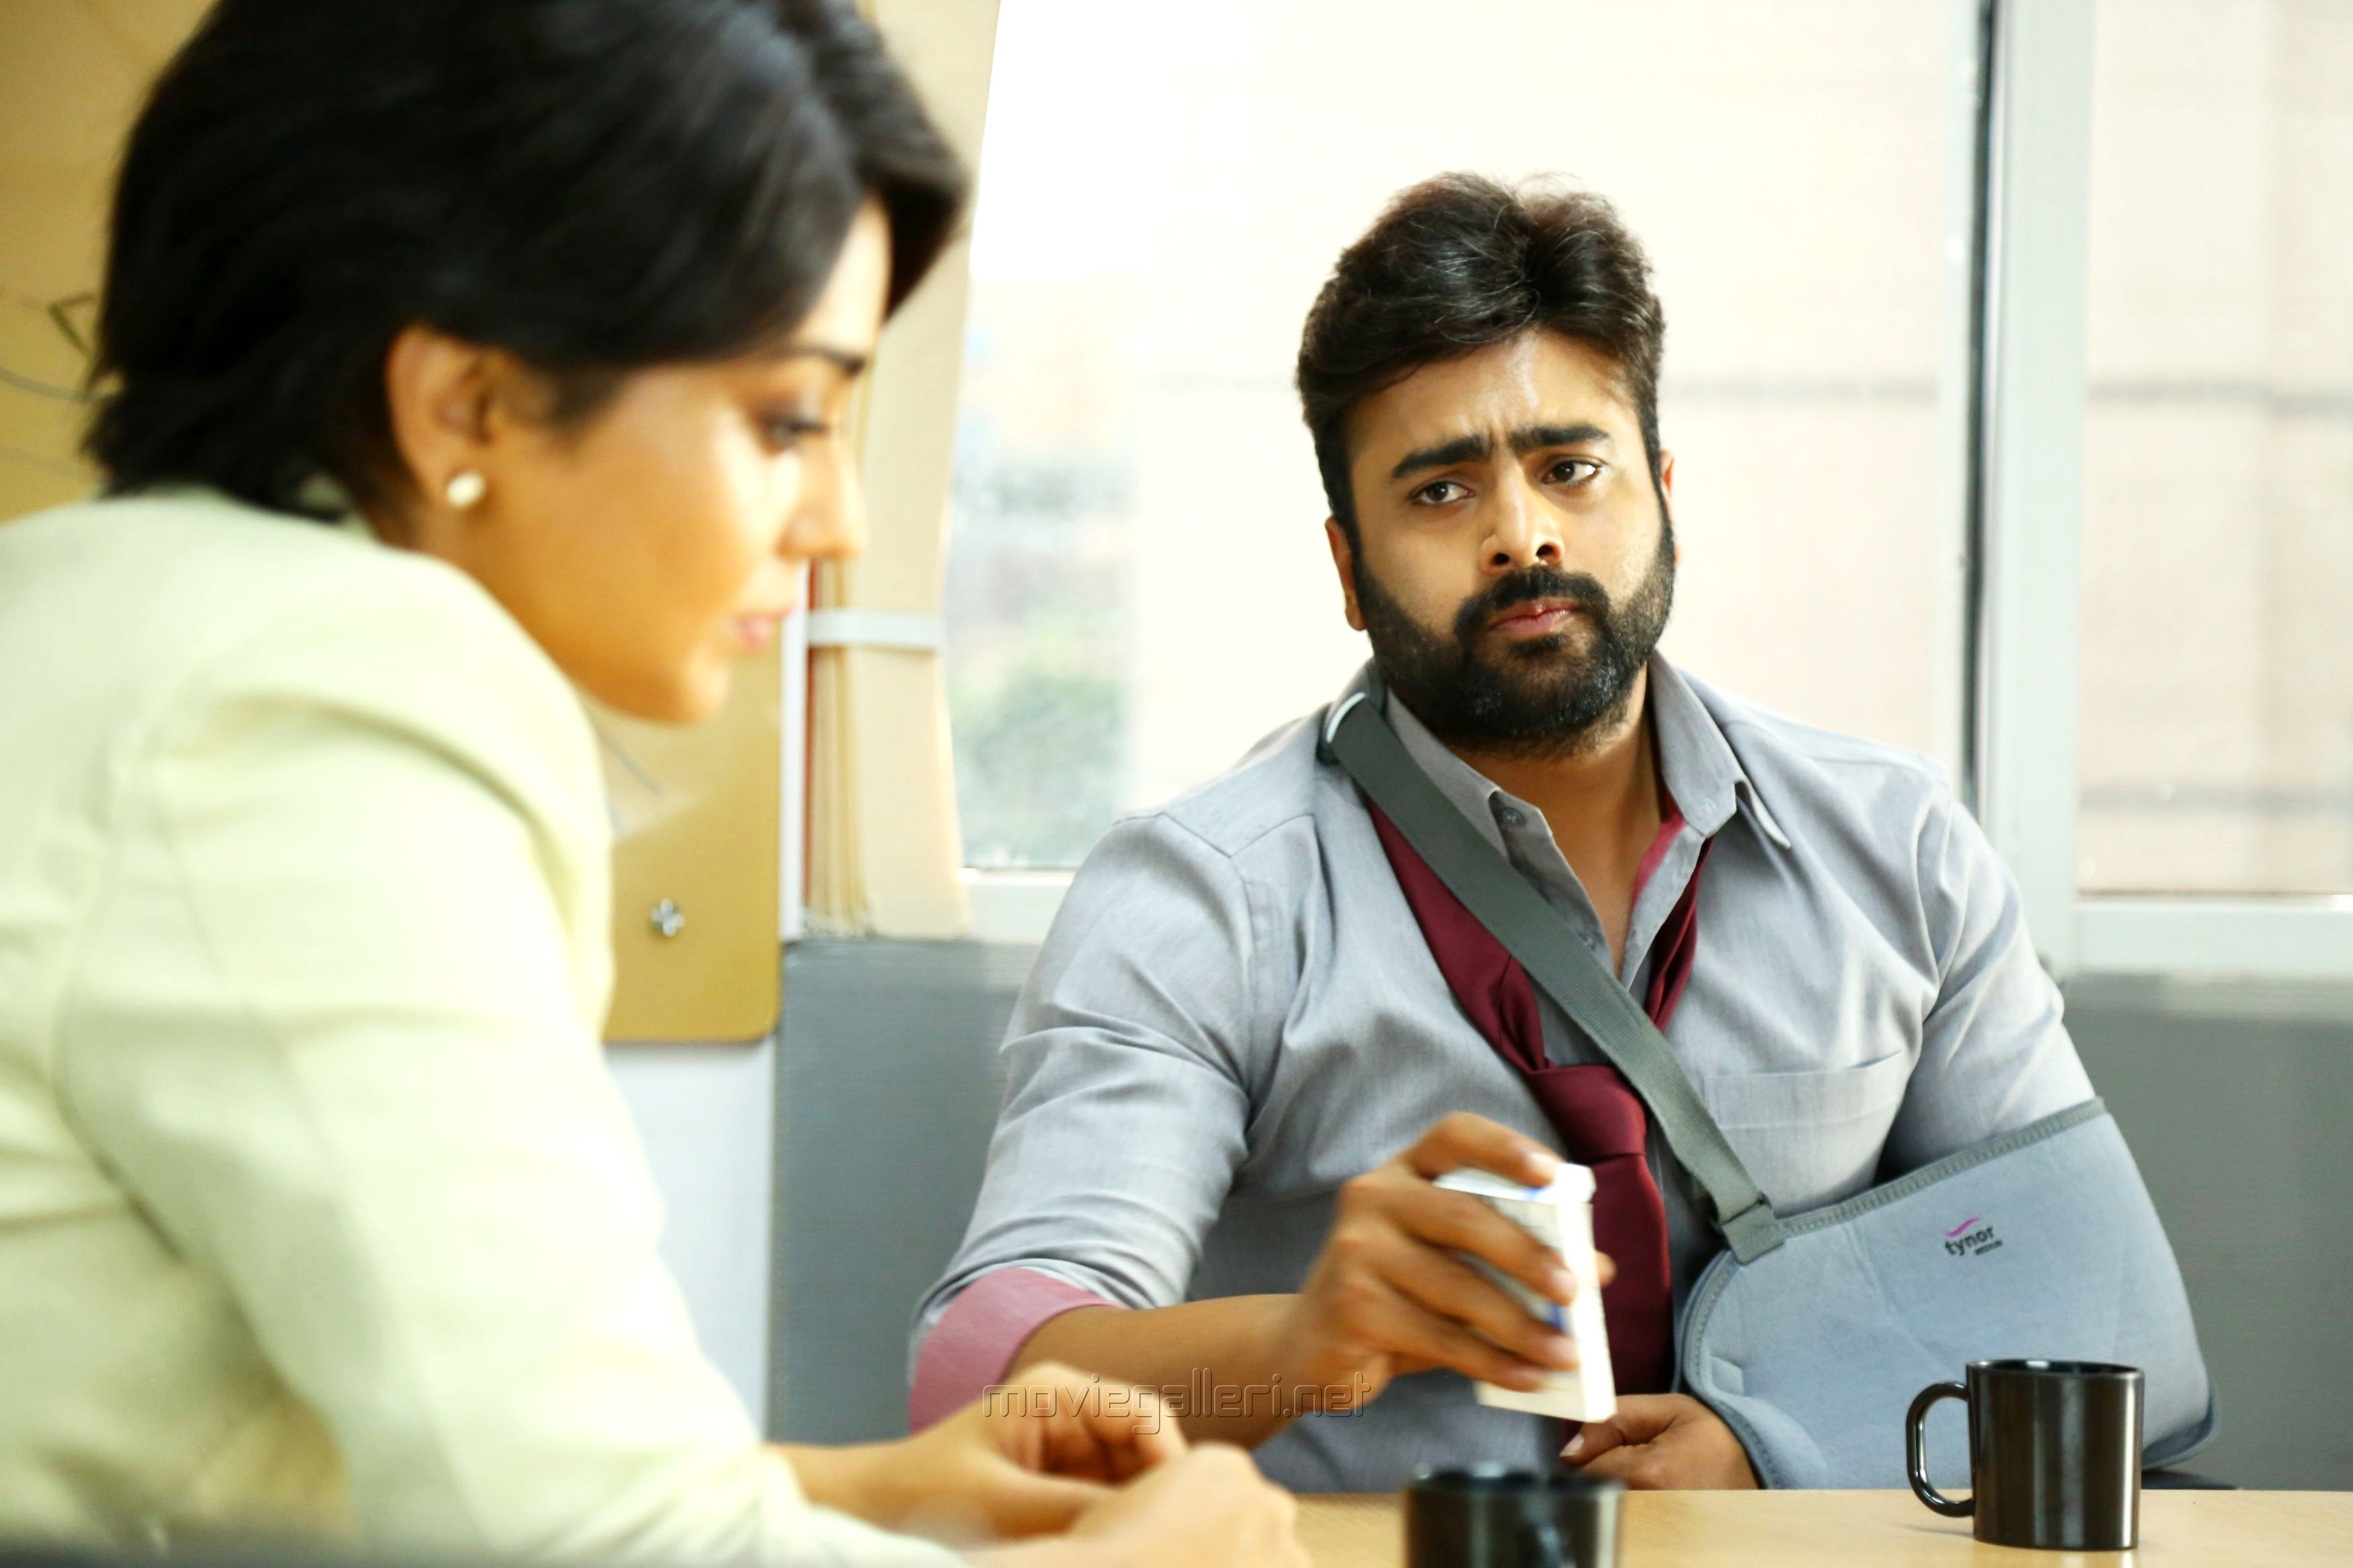 Shriya Saran, Nara Rohit in Veera Bhoga Vasantha Rayalu Movie Pics HD